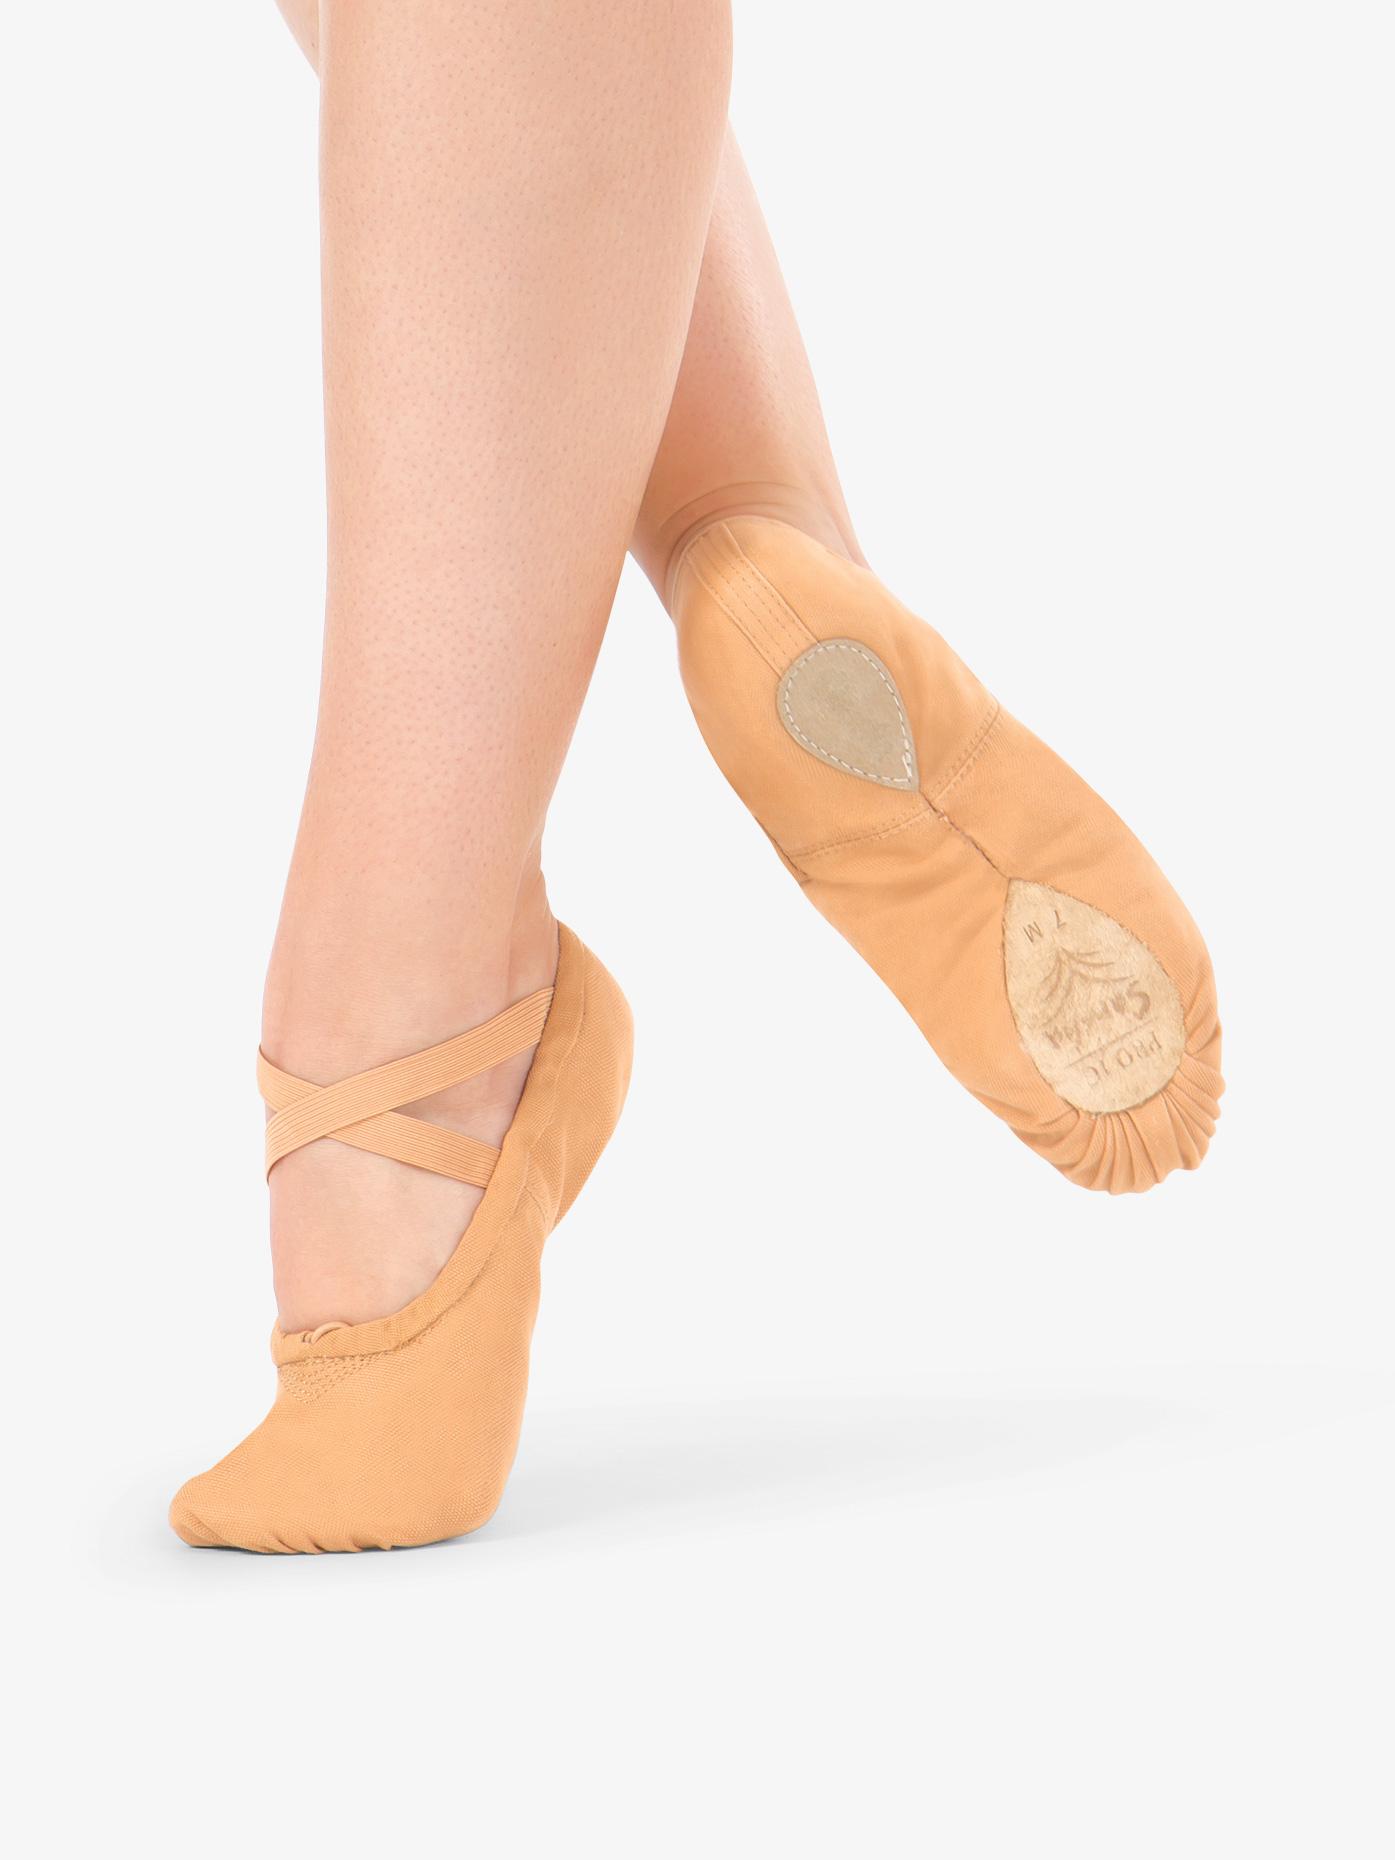 SANSHA Pro 1 Leather Ballet Slipper